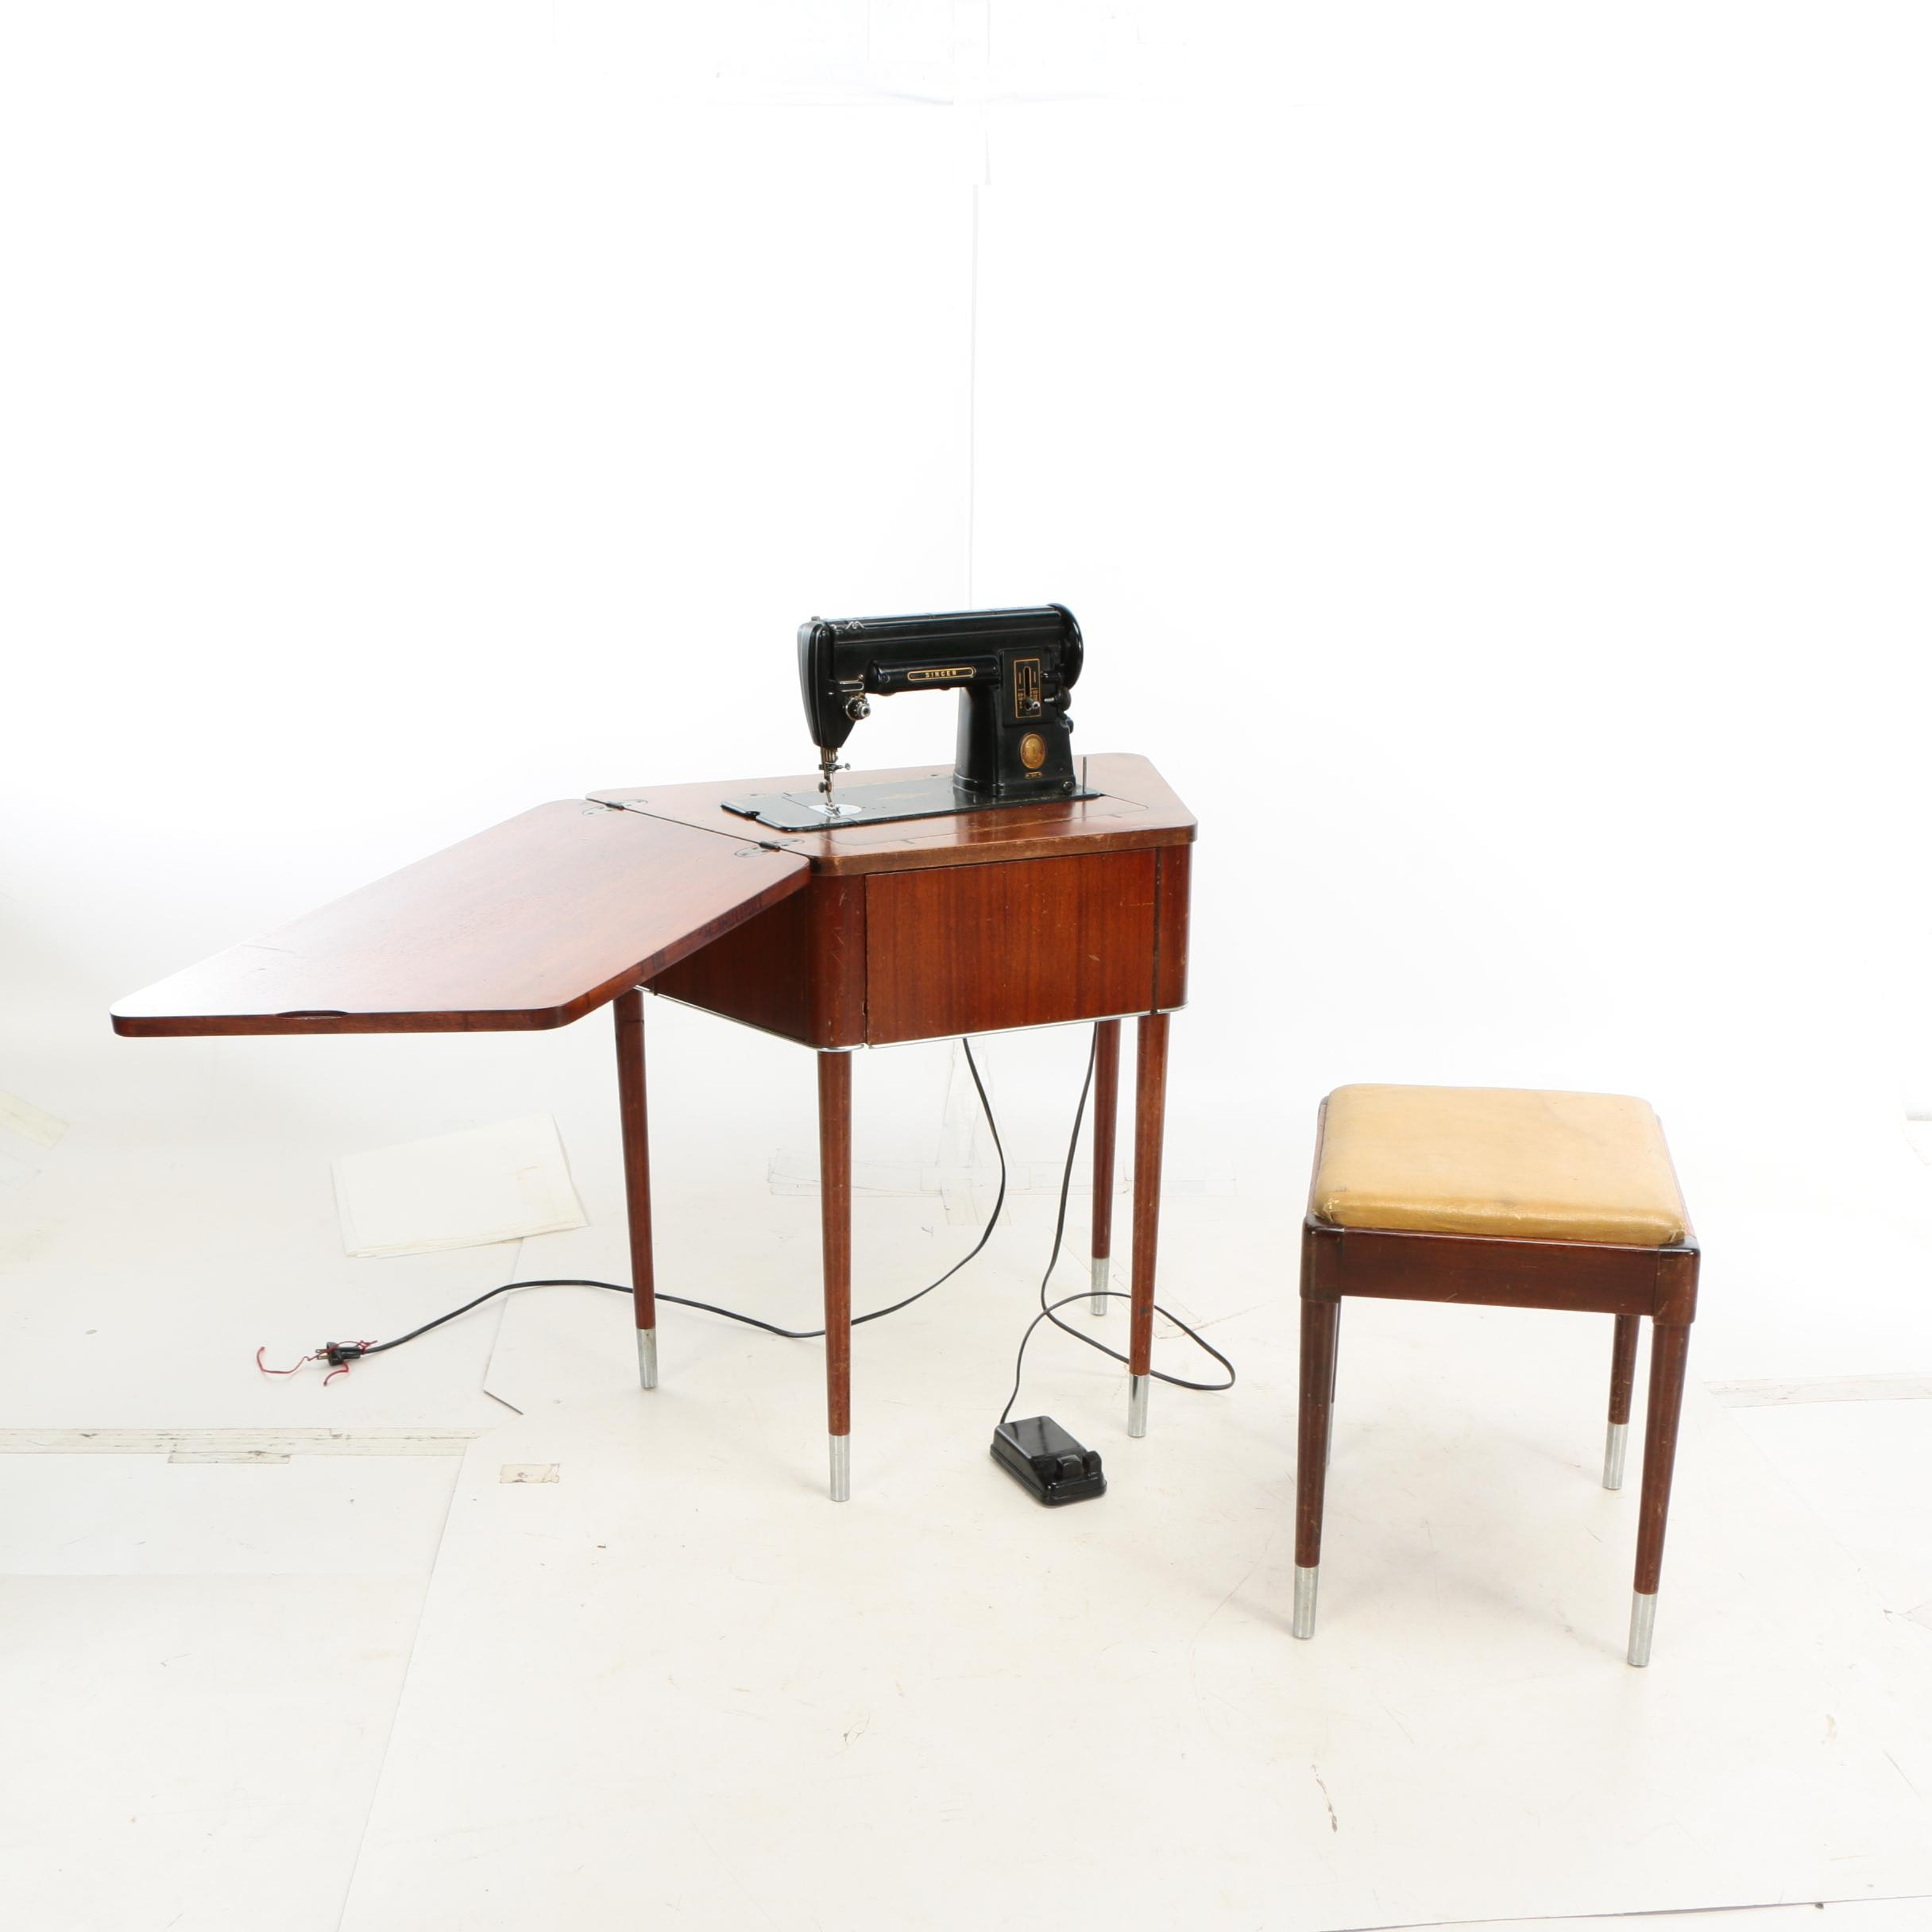 Mid Century Modern Singer Model 301 Sewing Machine Table and Stool, 1950s